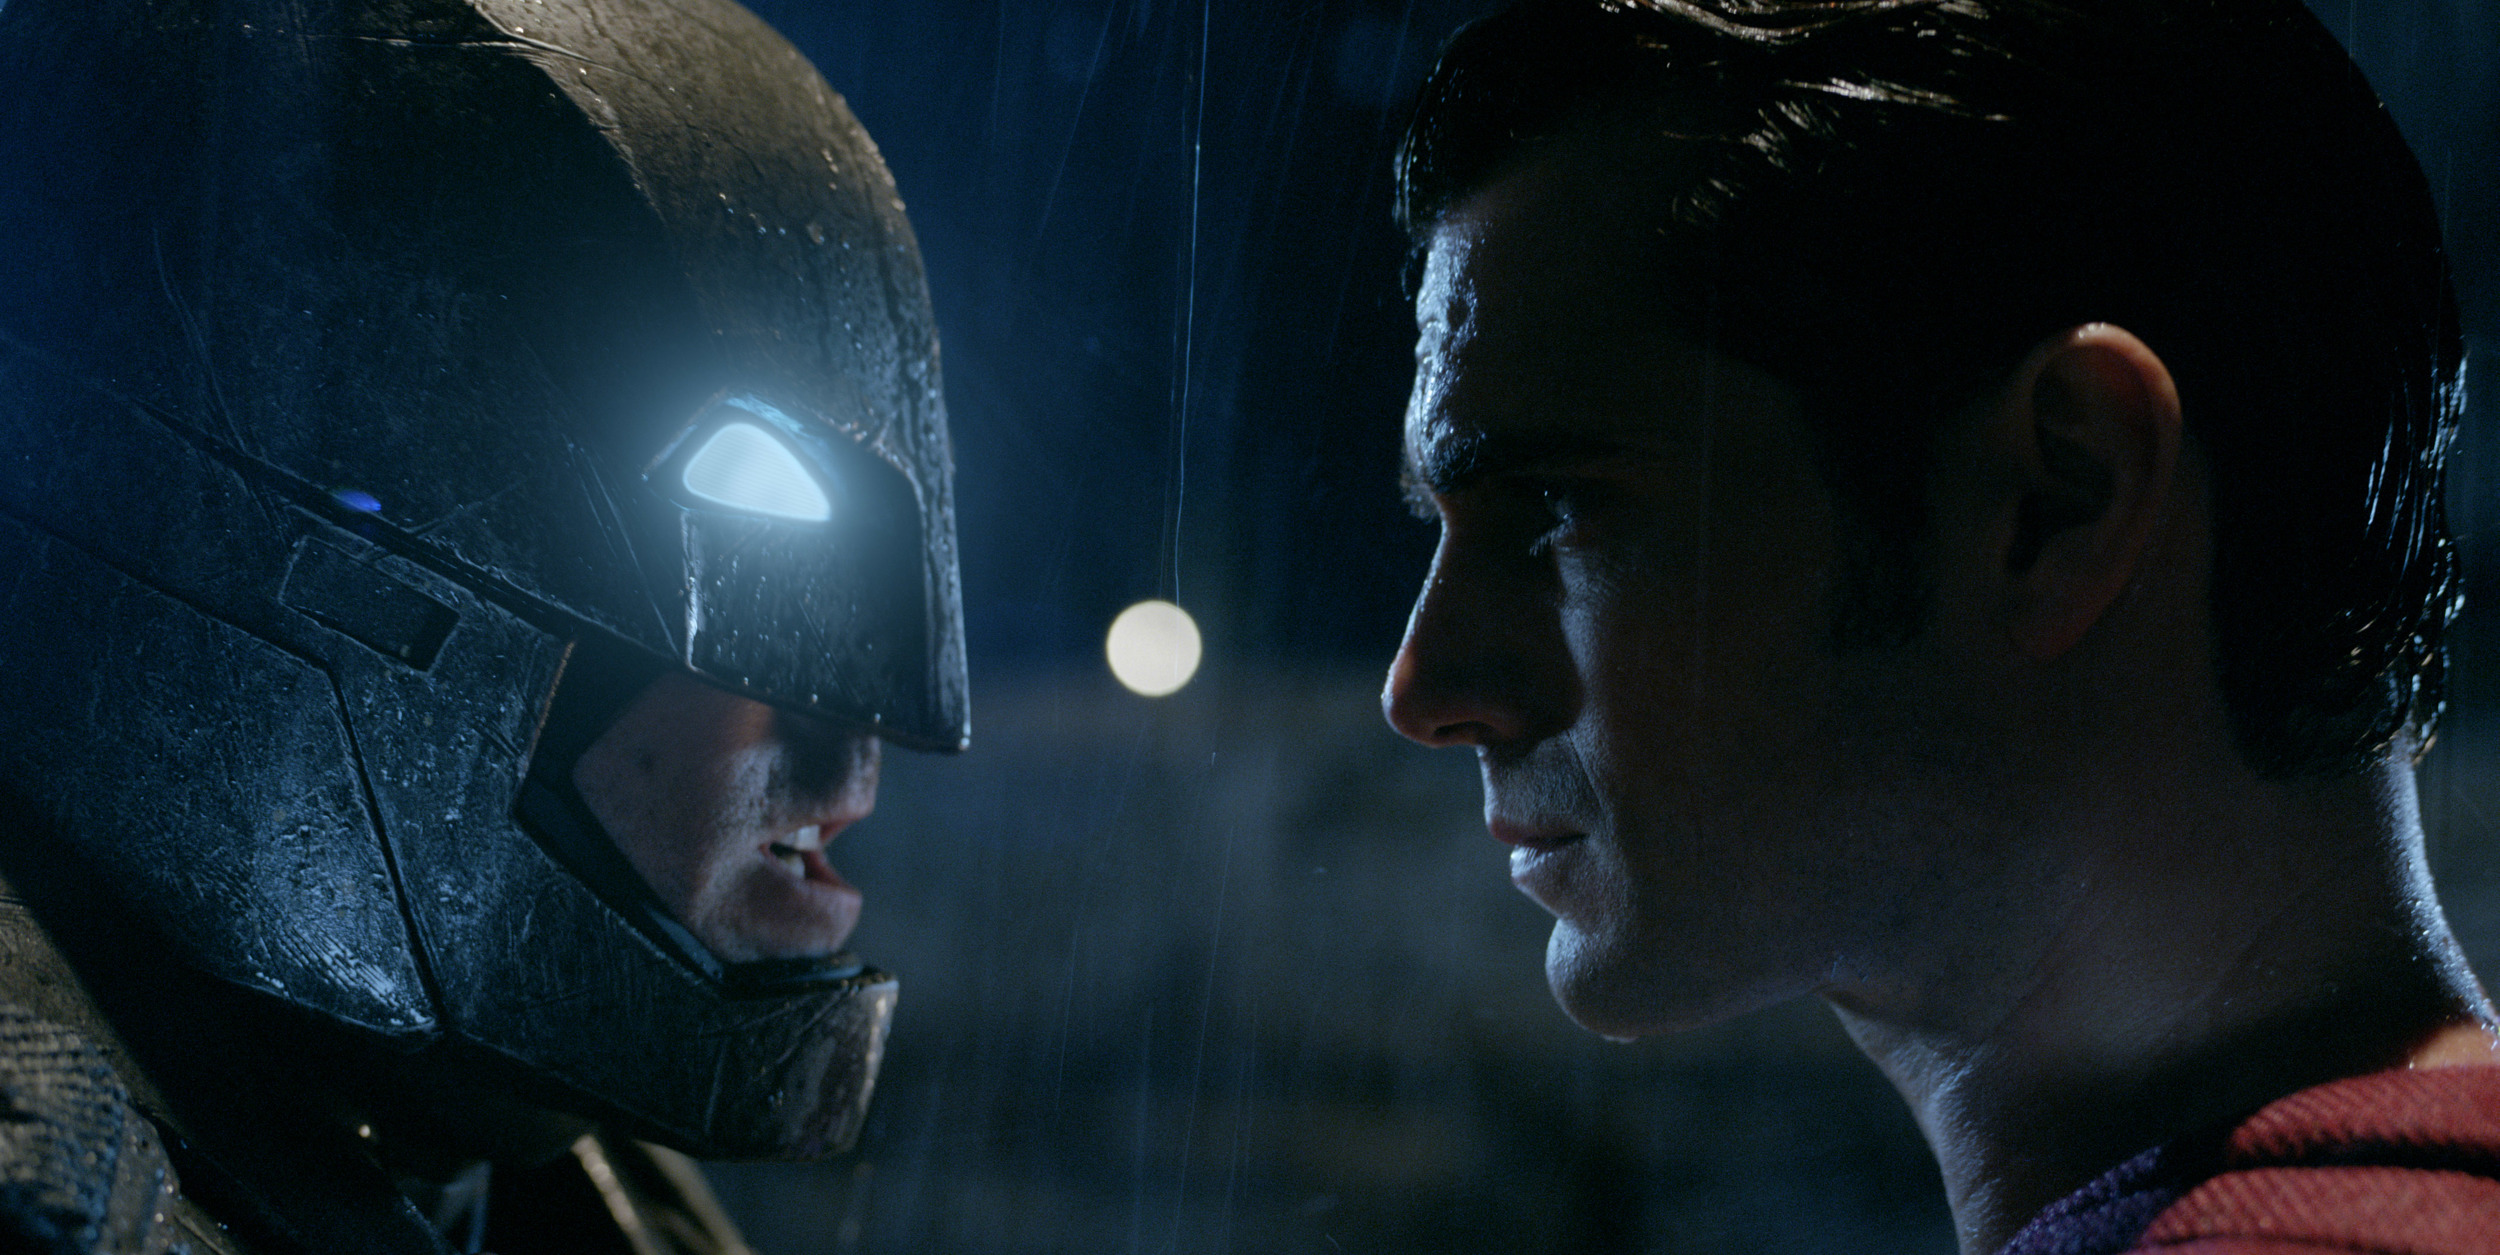 batman-vs-superman-movie-image.jpg